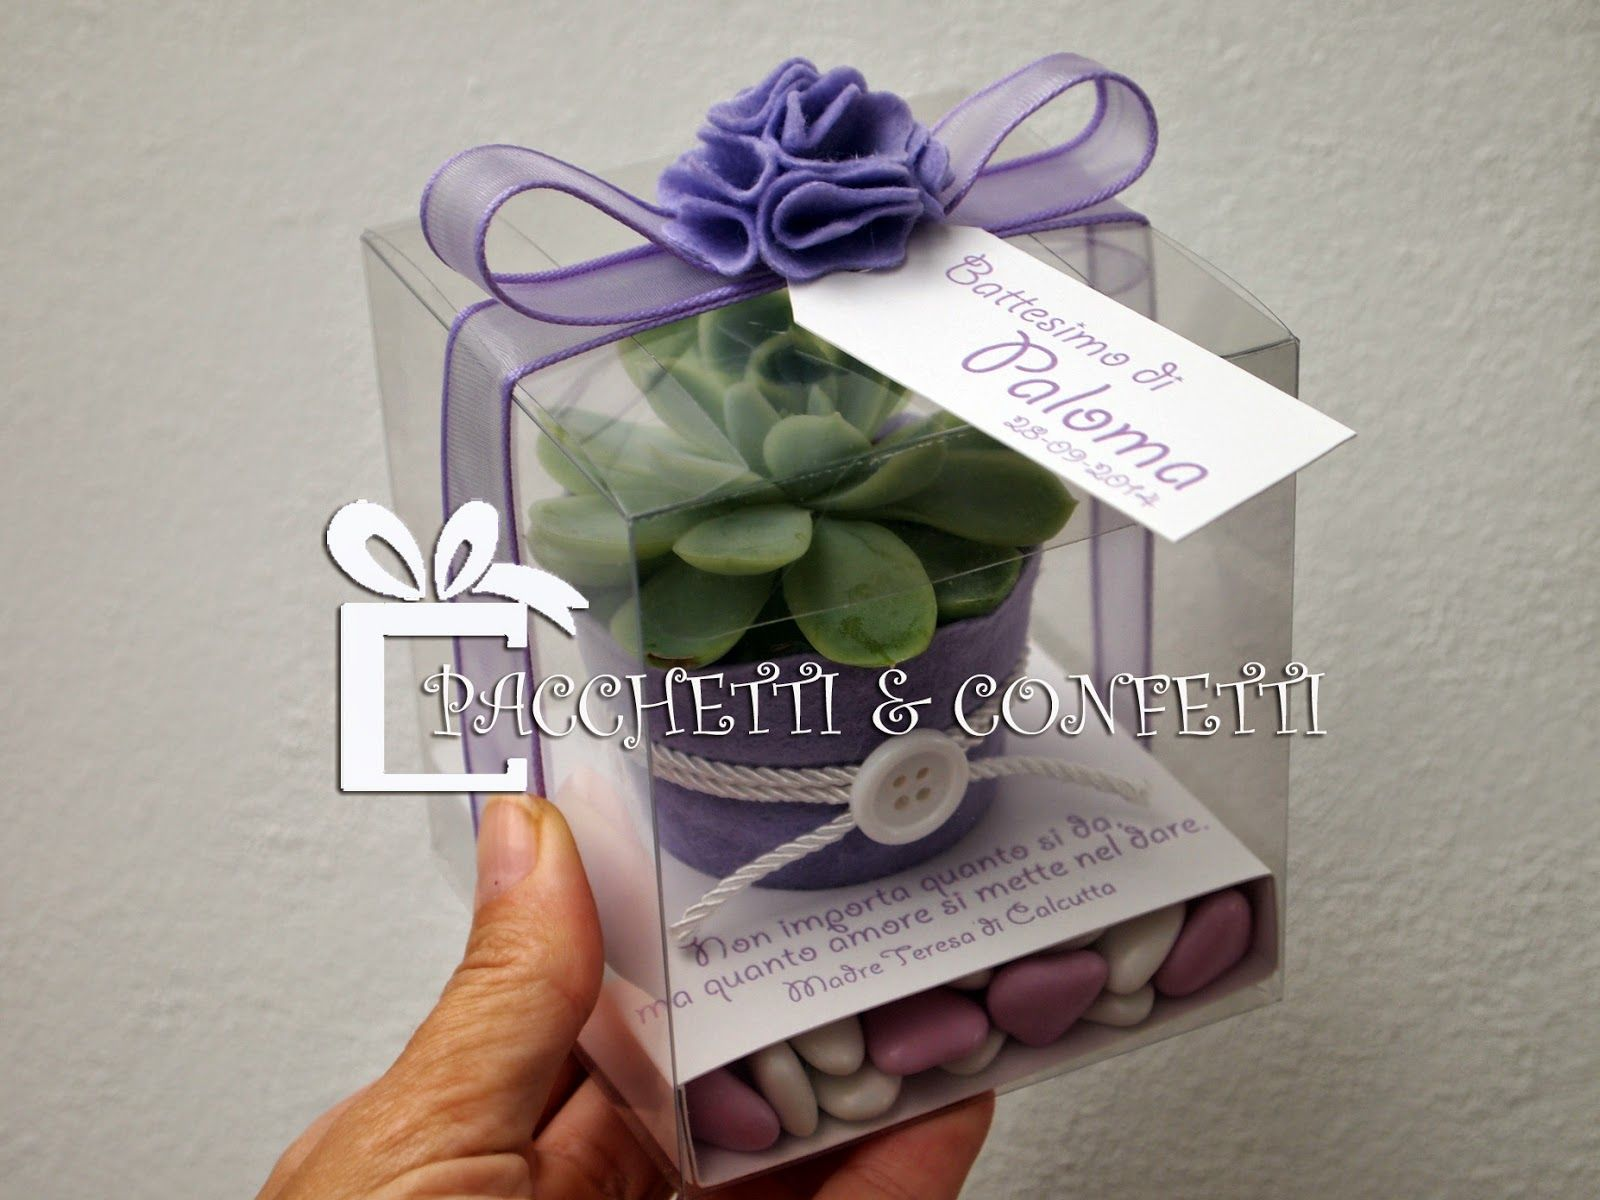 Pacchetti E Confetti Baby Shop Made With Love Baby Shop Baby